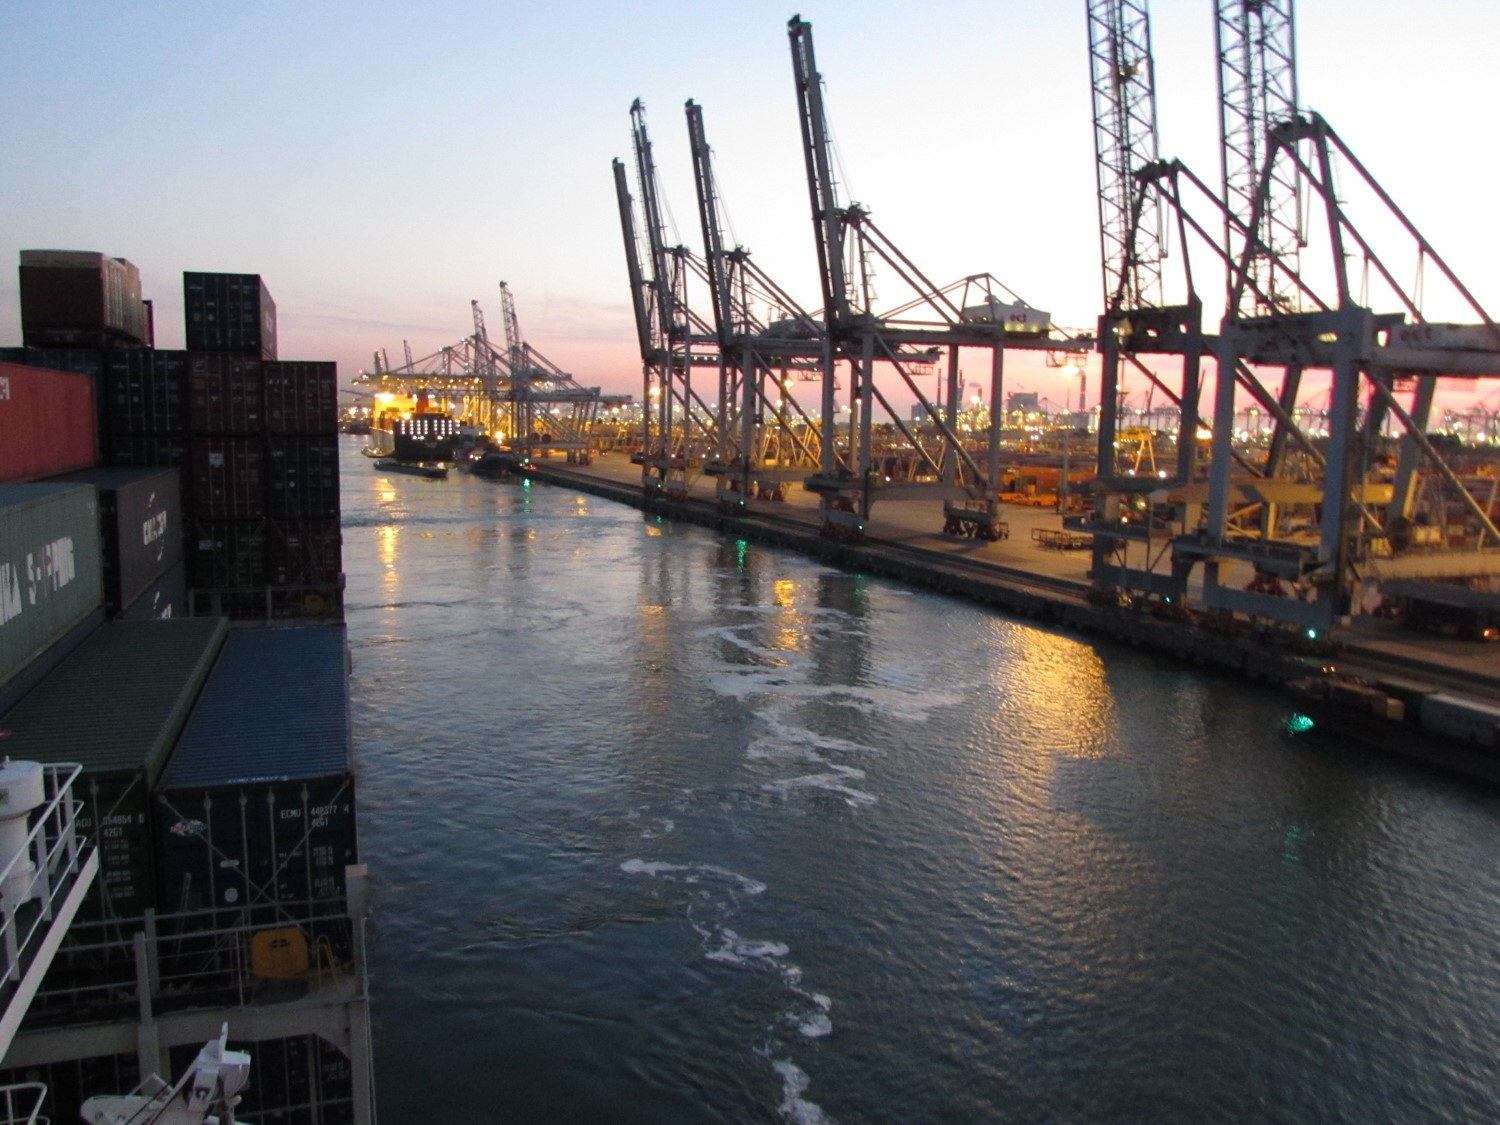 Leaving the port of Rotterdam